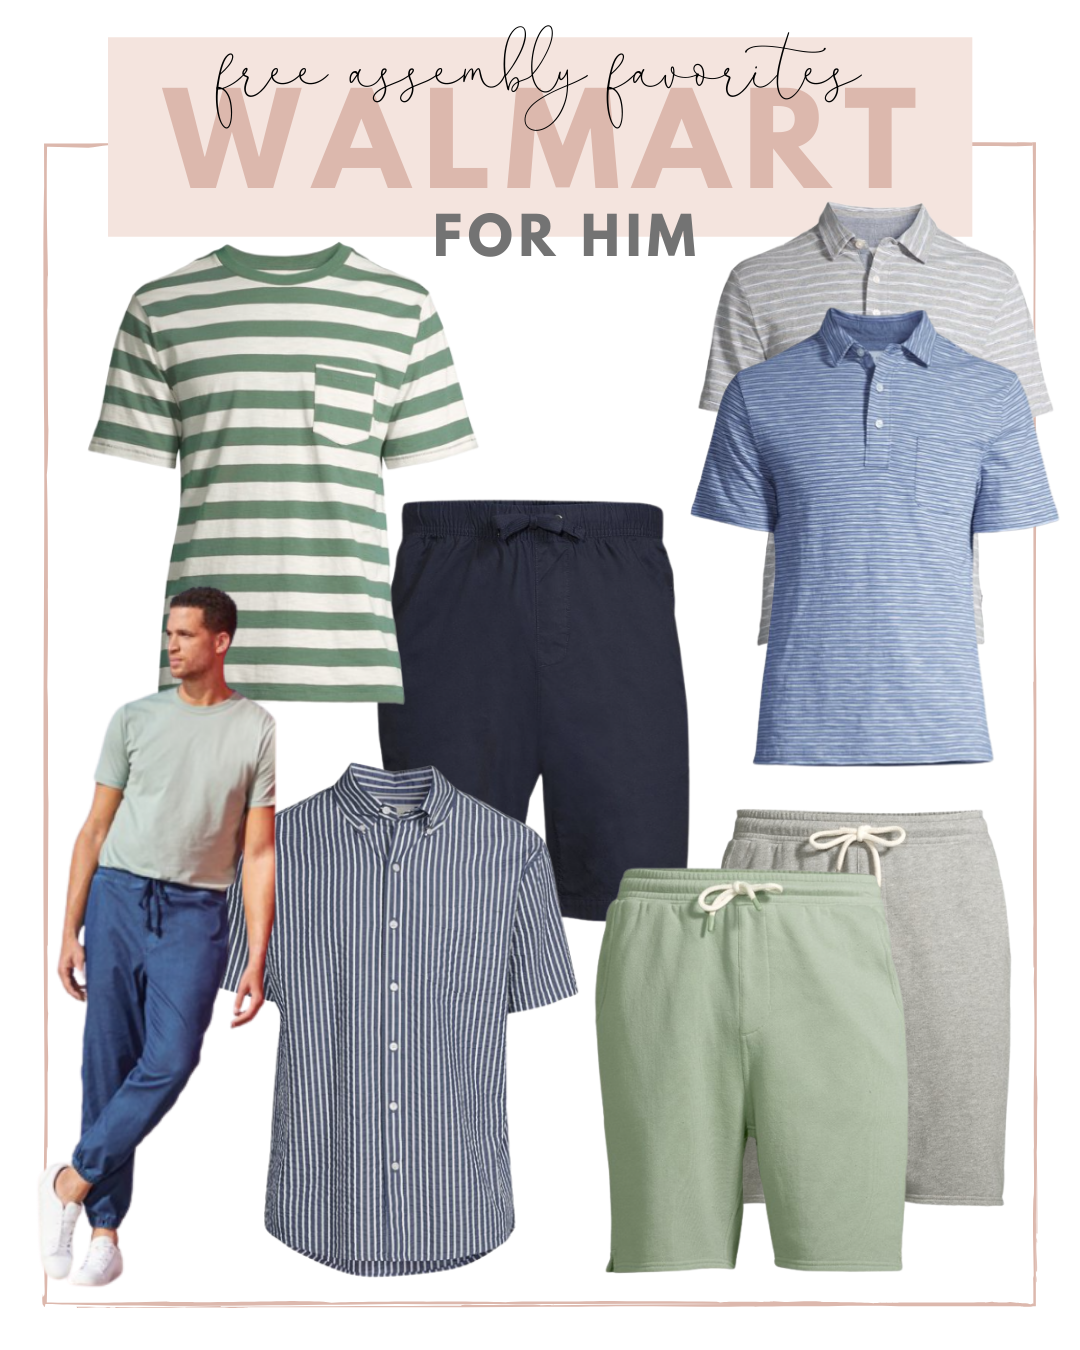 free assembly summer favorites for him